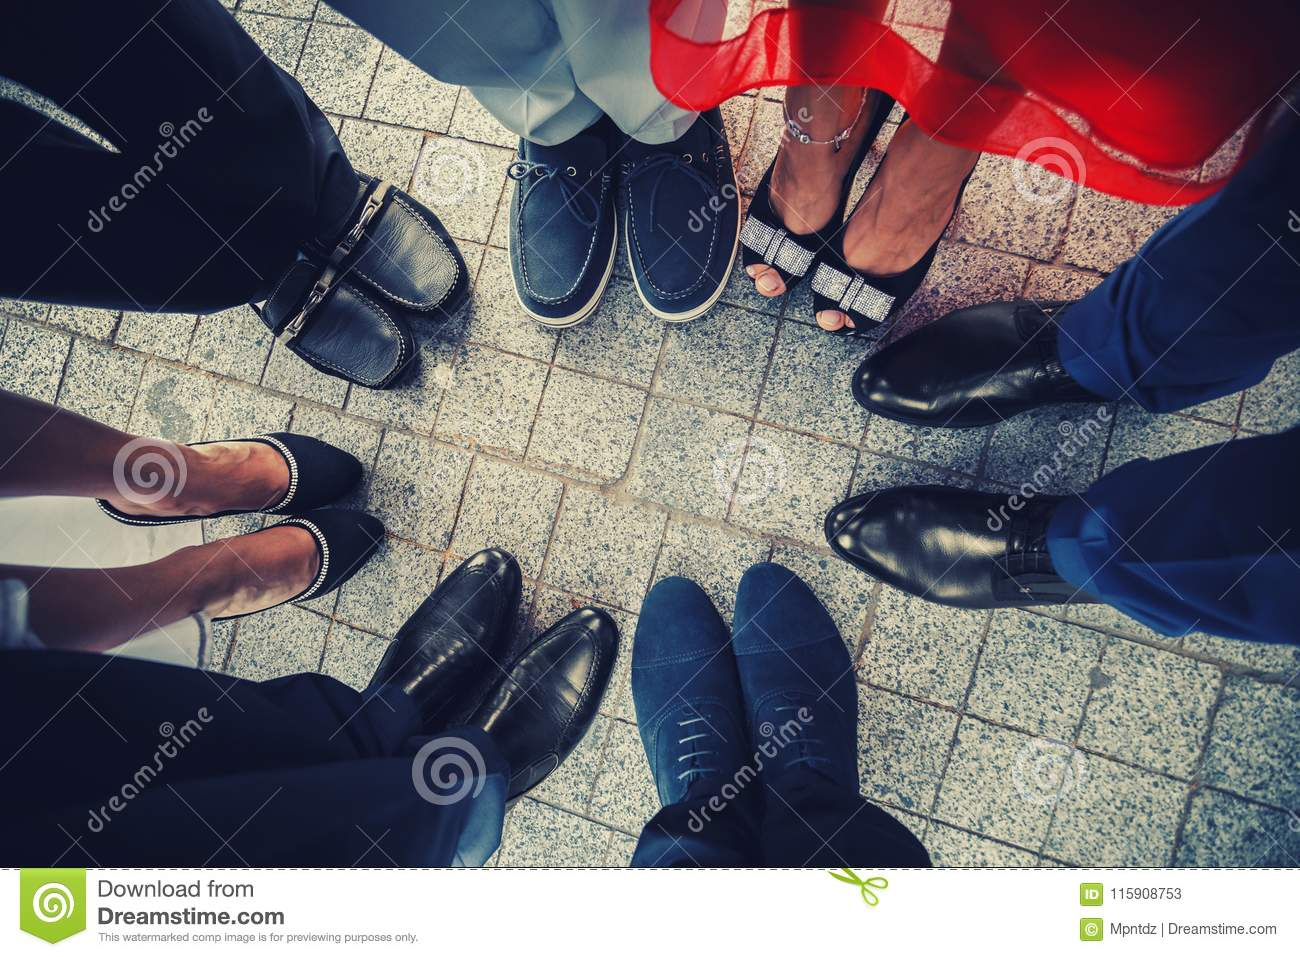 Top view of feet of fashionable, stylish people standing in a circle